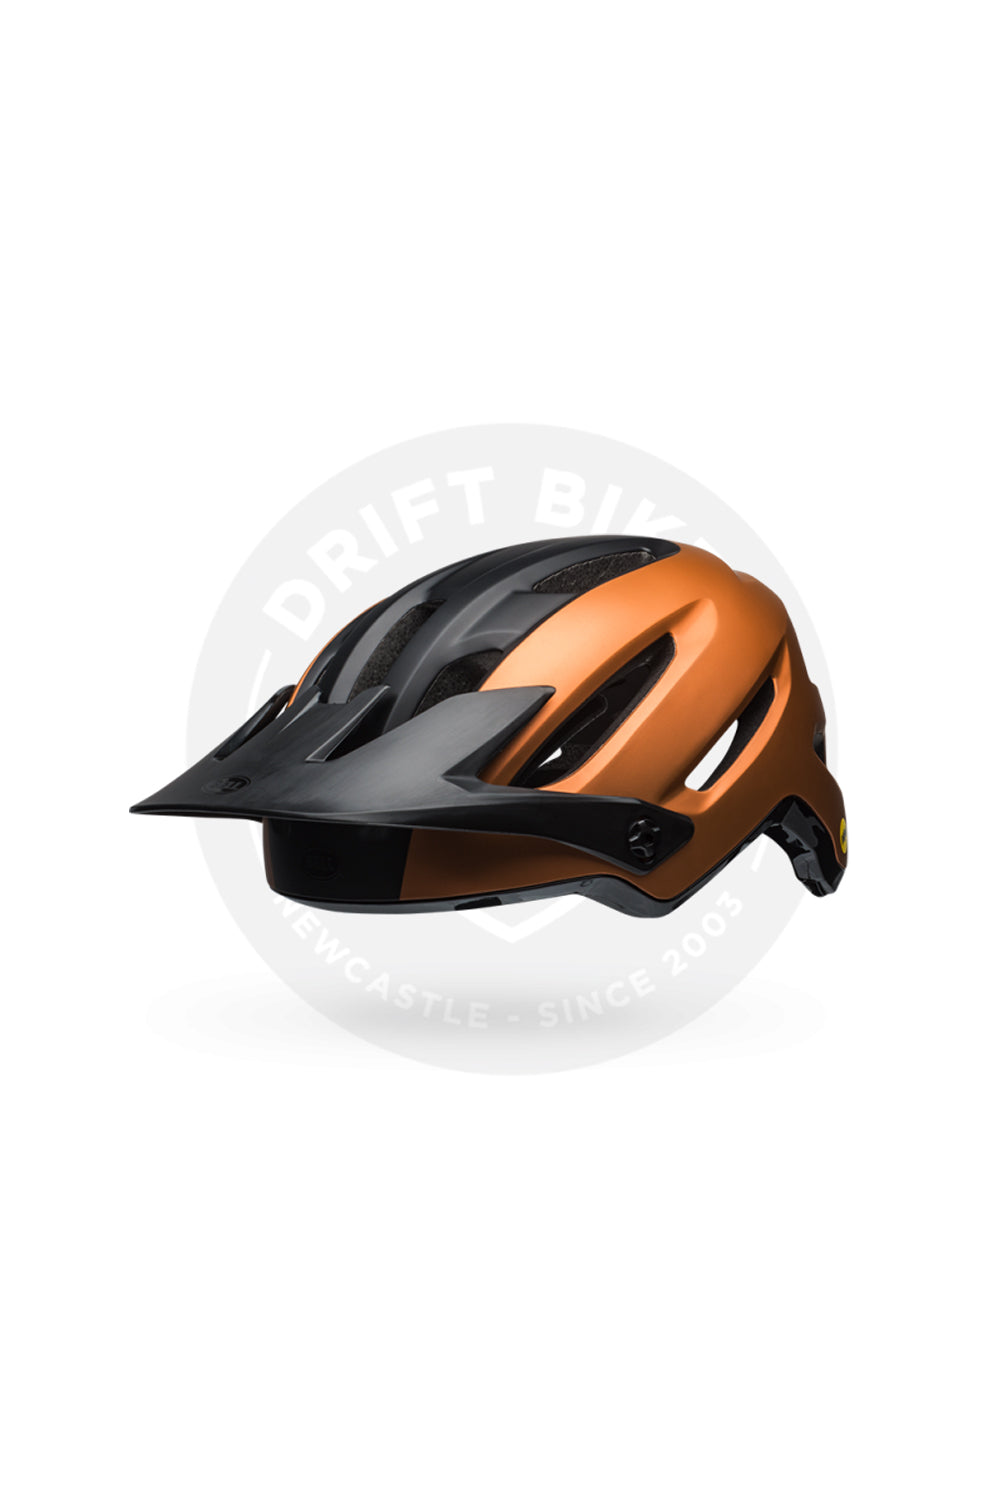 Bell 4FORTY MIPS Adult Mountain Bike Helmet